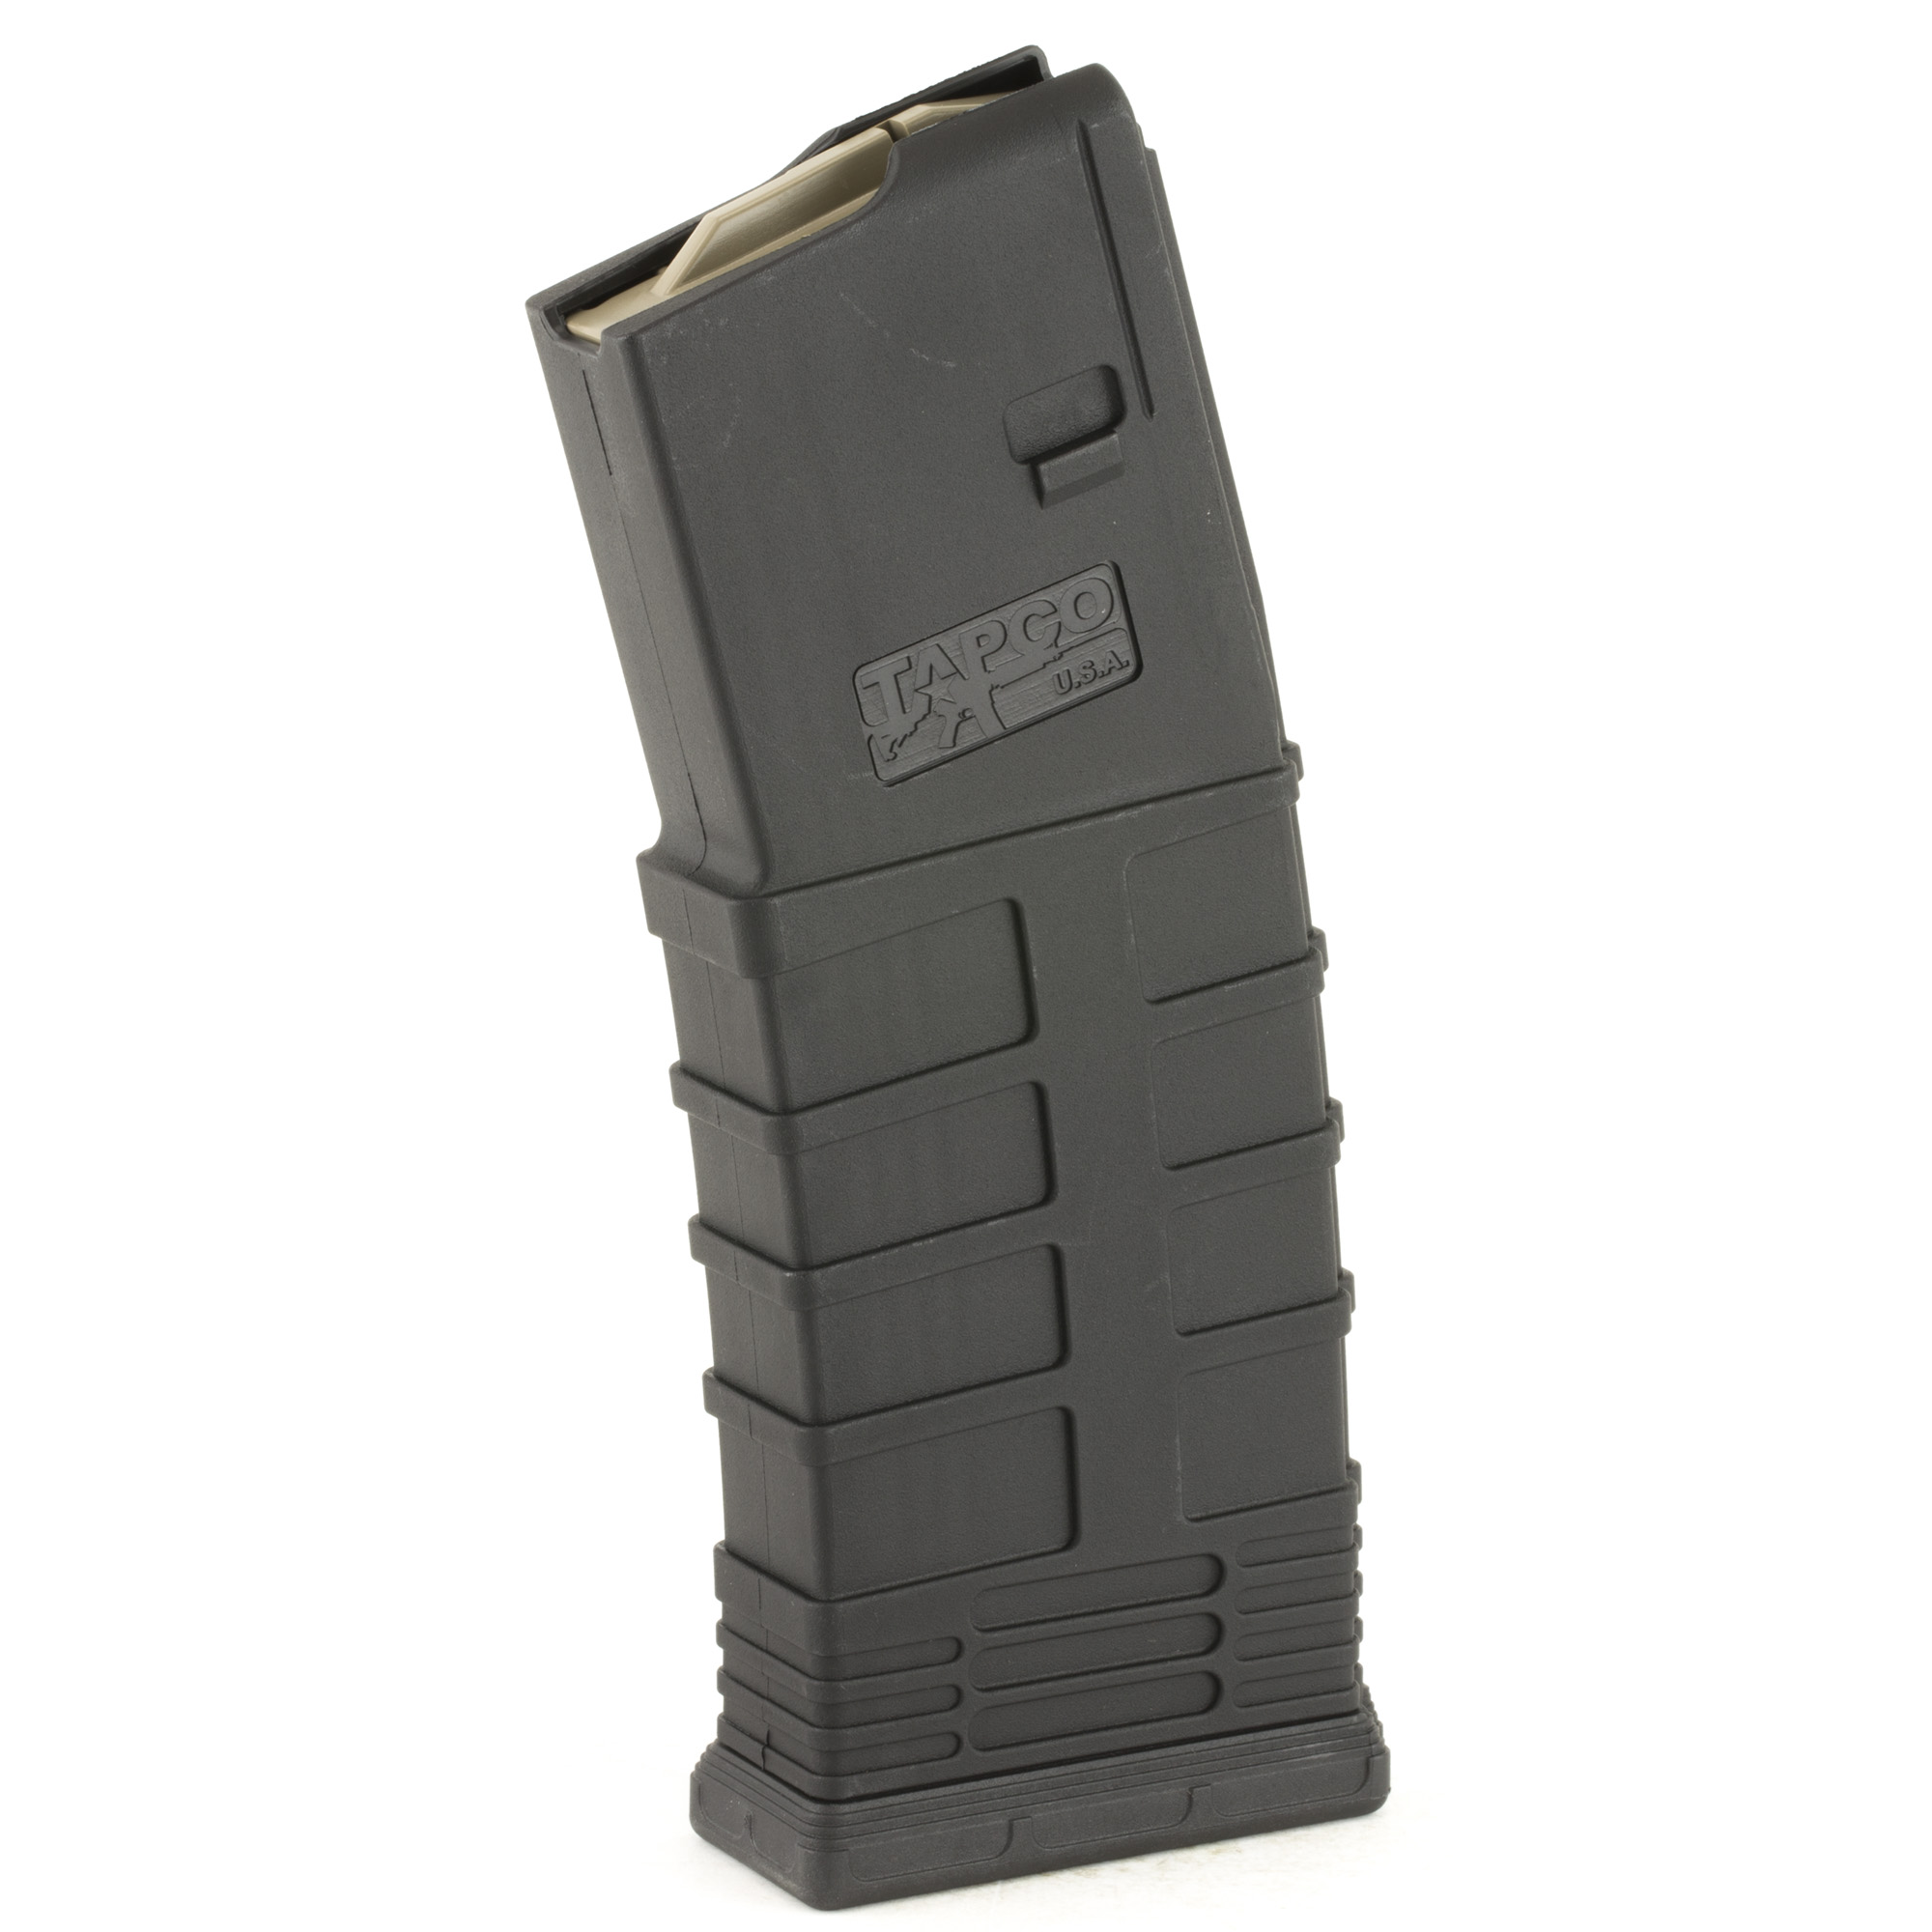 When you purchase the Tapco 5rd Gen II AR Magazine you can be sure that you are the owner of the best AR magazine on the market. The Gen II magazine does away with the rare drop-free issue that some users were experiencing with the first generation mag.